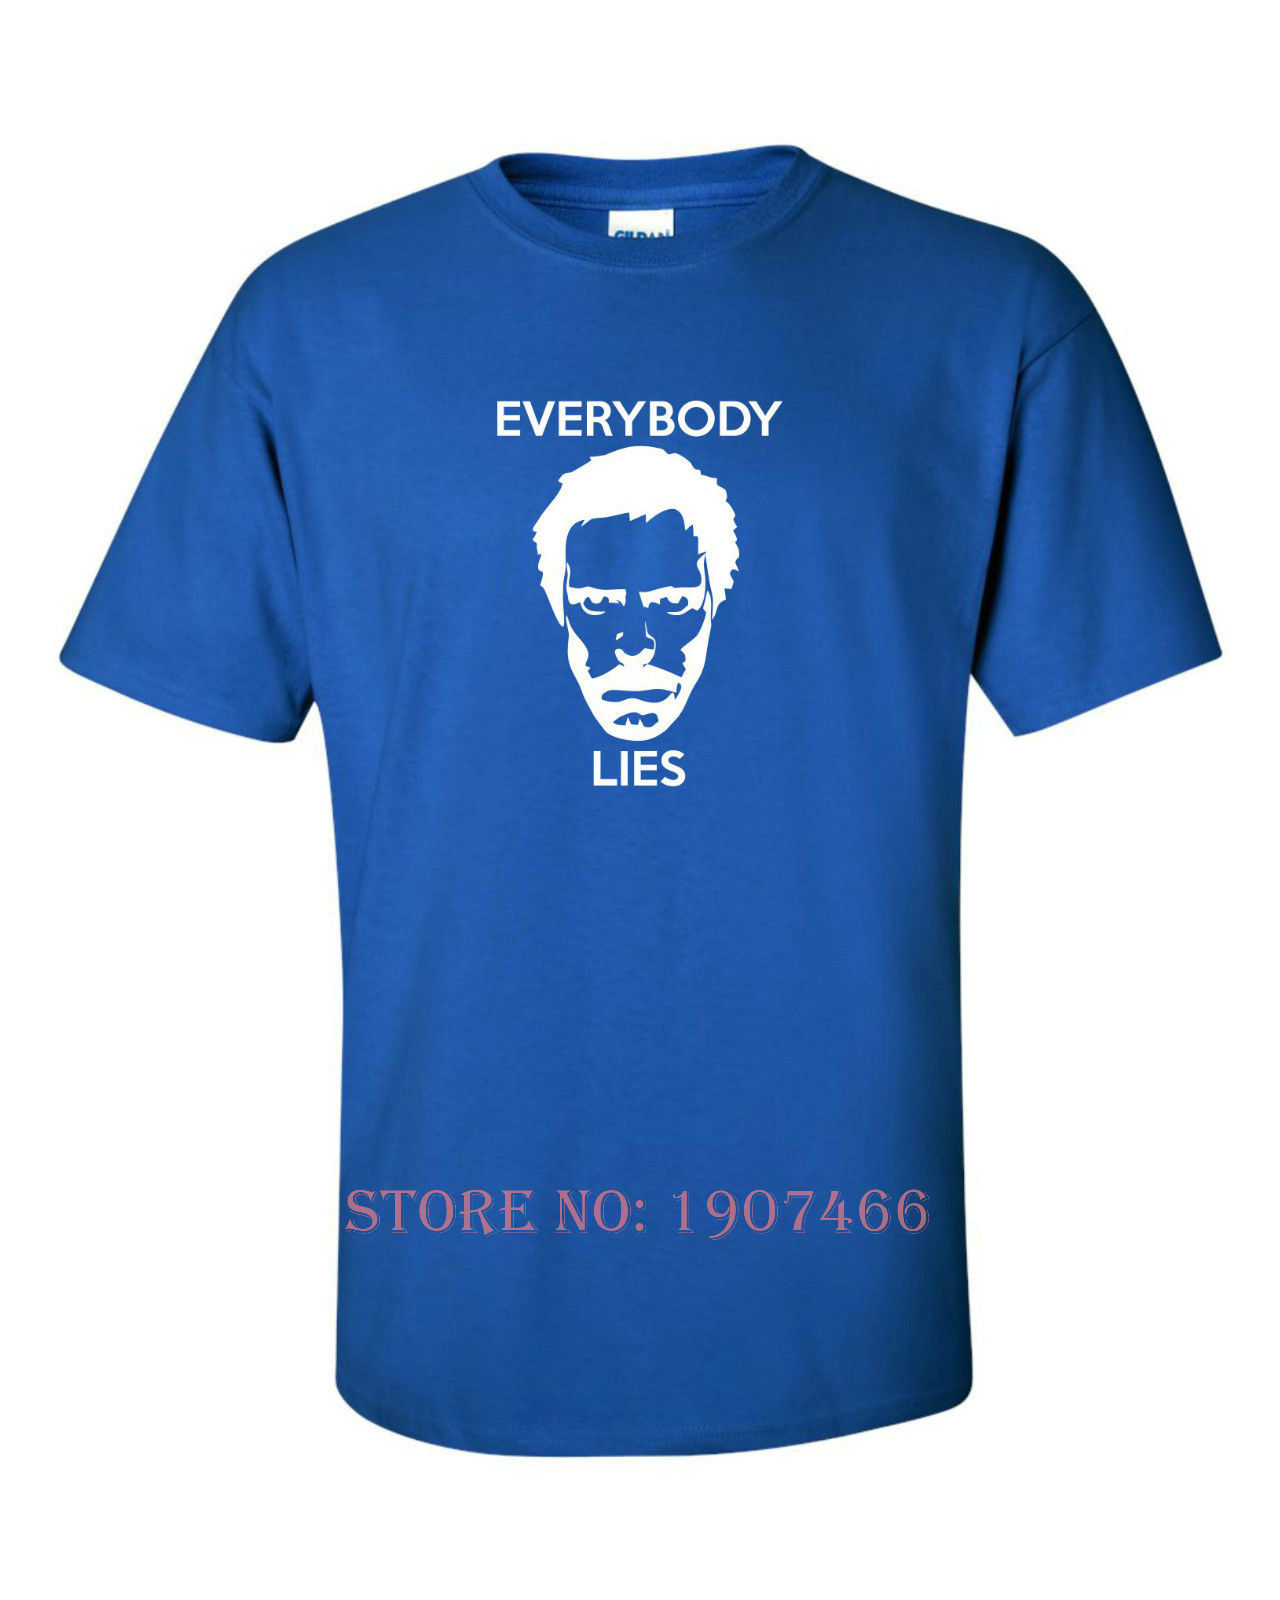 8dba76afa EVERYBODY LIES Funny Mens T Shirt HOUSE MD DOCTOR Humour Joke Gift ...